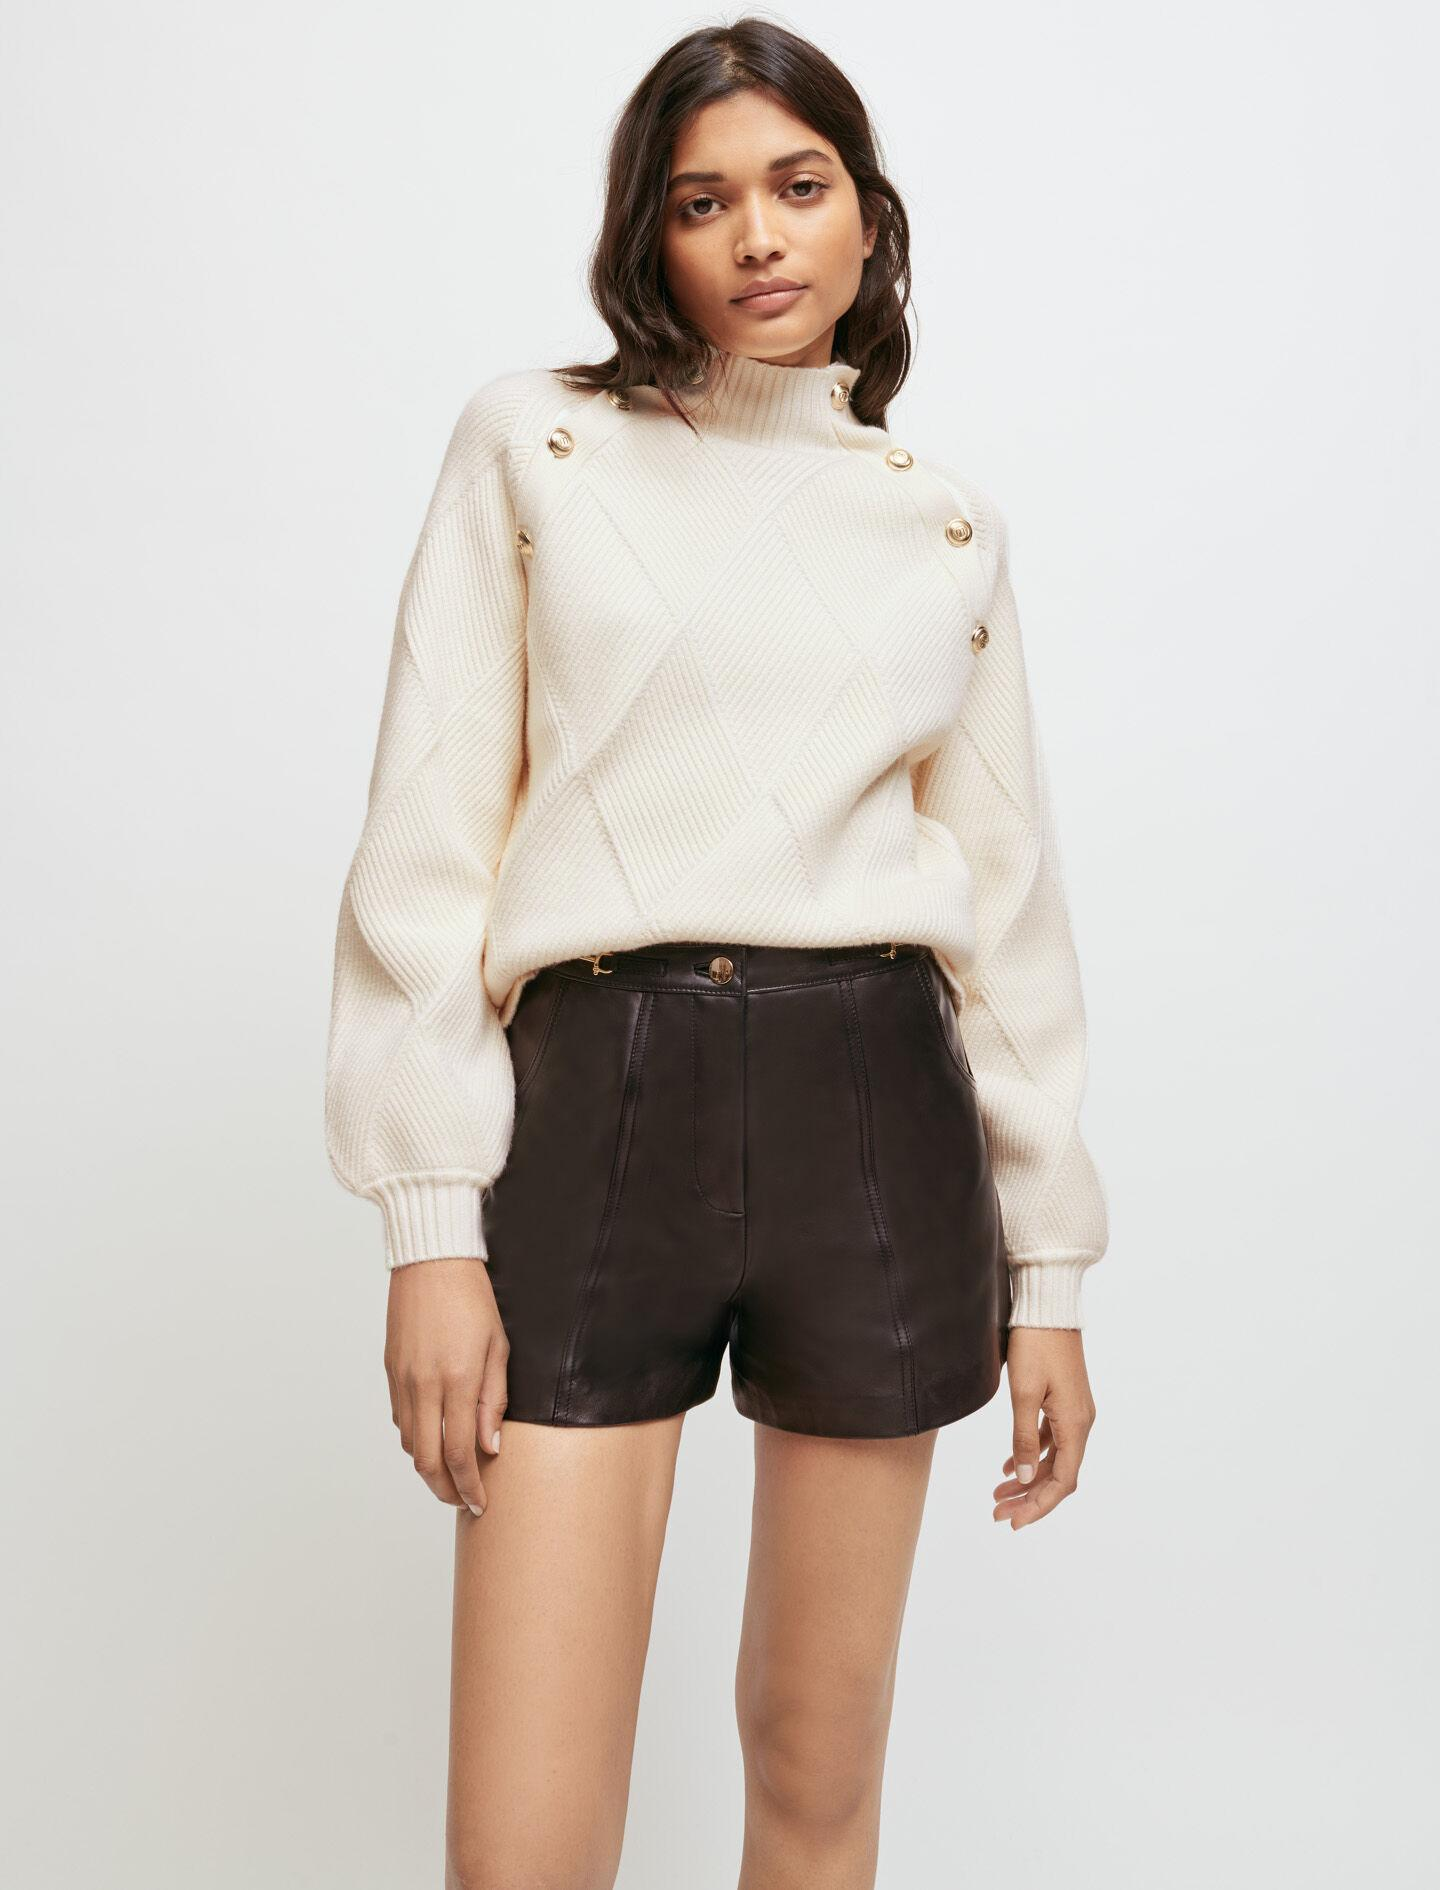 ECRU JACQUARD SWEATER WITH STAND-UP NECK